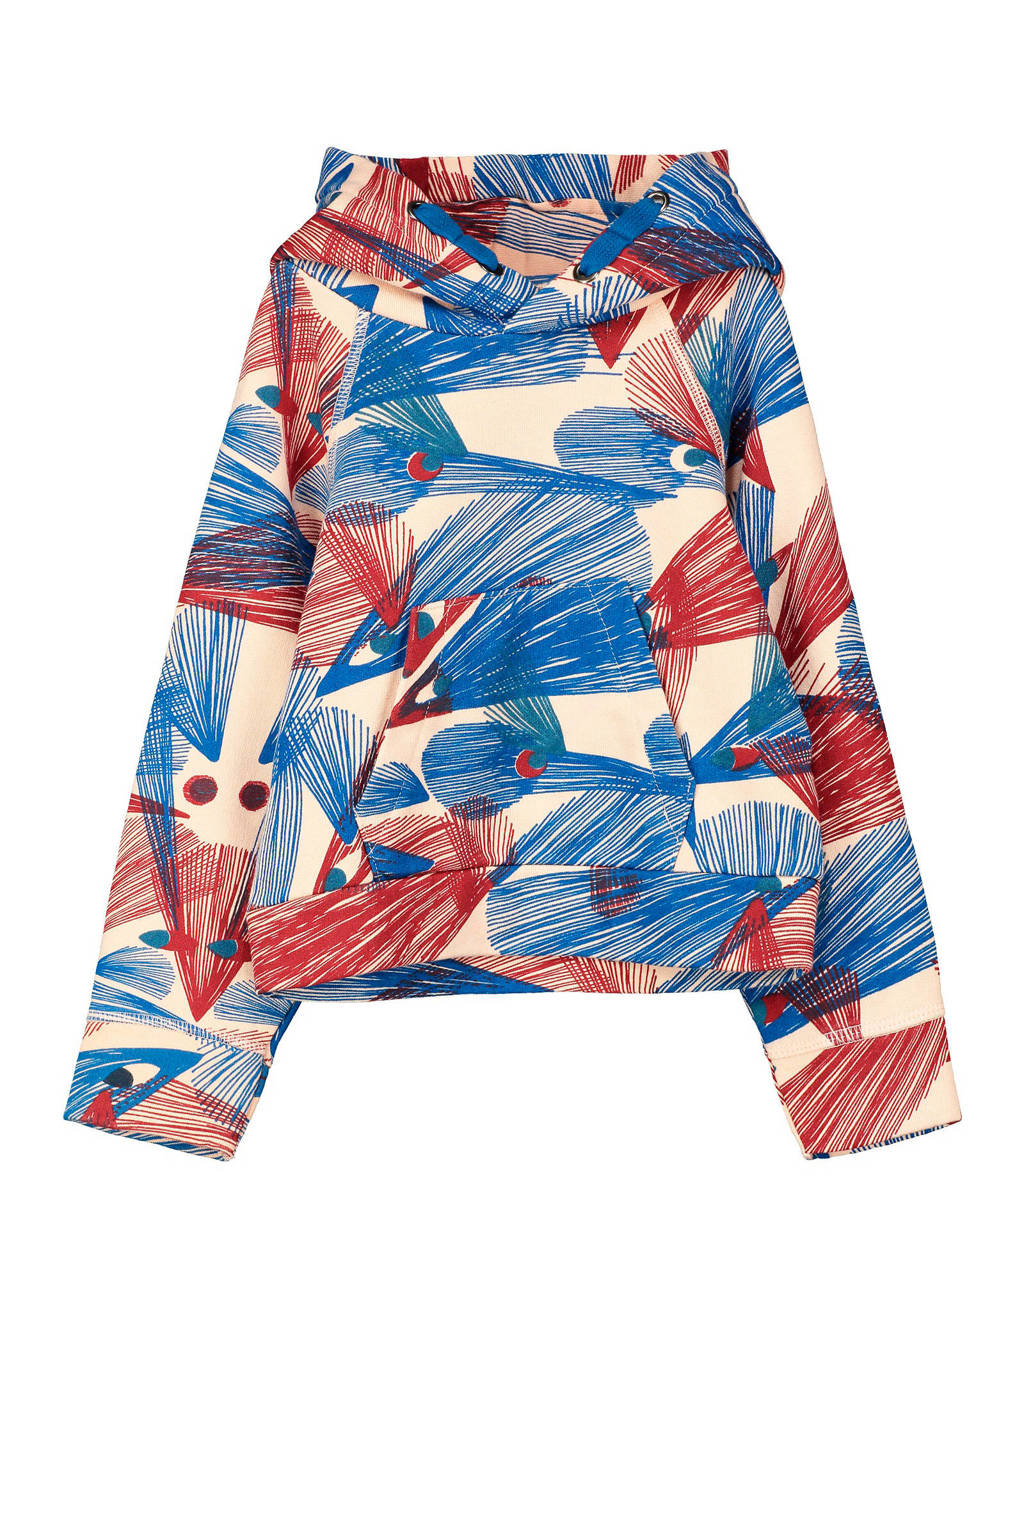 fred + ginger hoodie Alfa met all over print rood/blauw, Rood/blauw